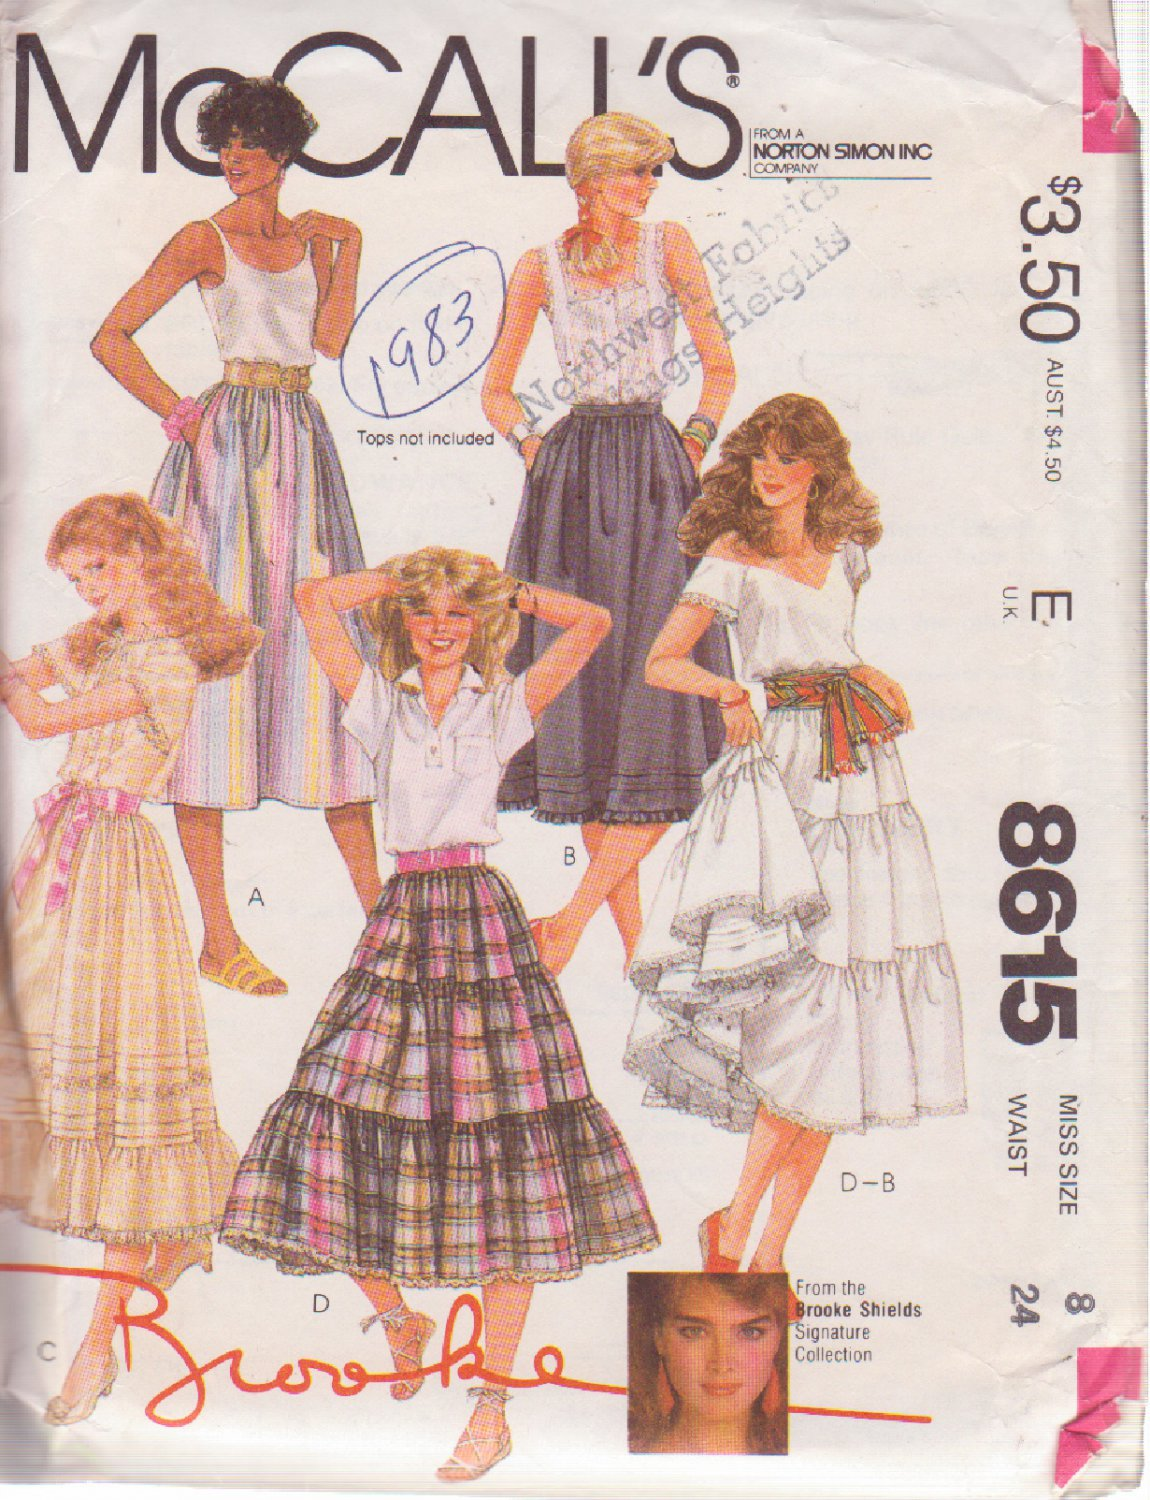 McCALL'S PATTERN 8615 SIZE 8  MISSES' SKIRT IN 4 VARIATIONS by Brooke Shields